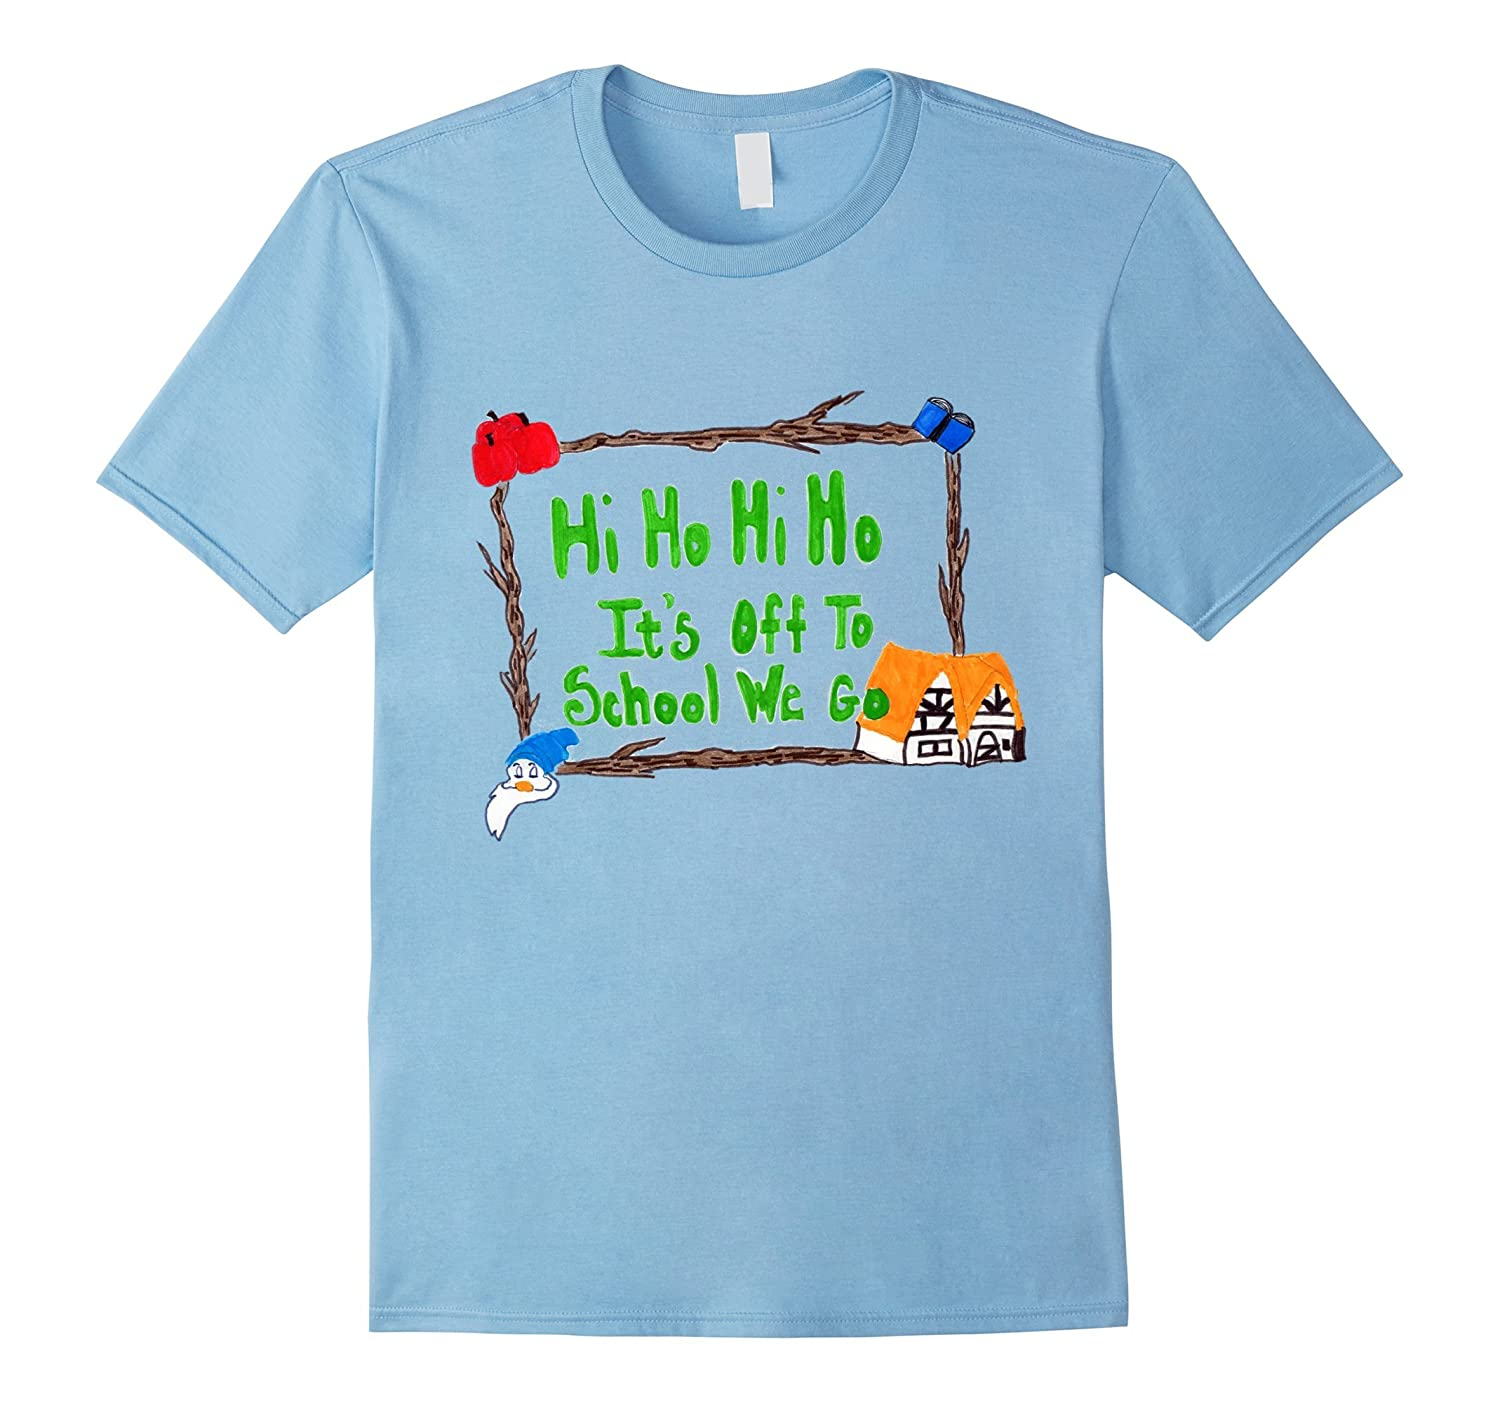 Hi Ho Hi Ho It's Off to School We Go T-shirt-FL